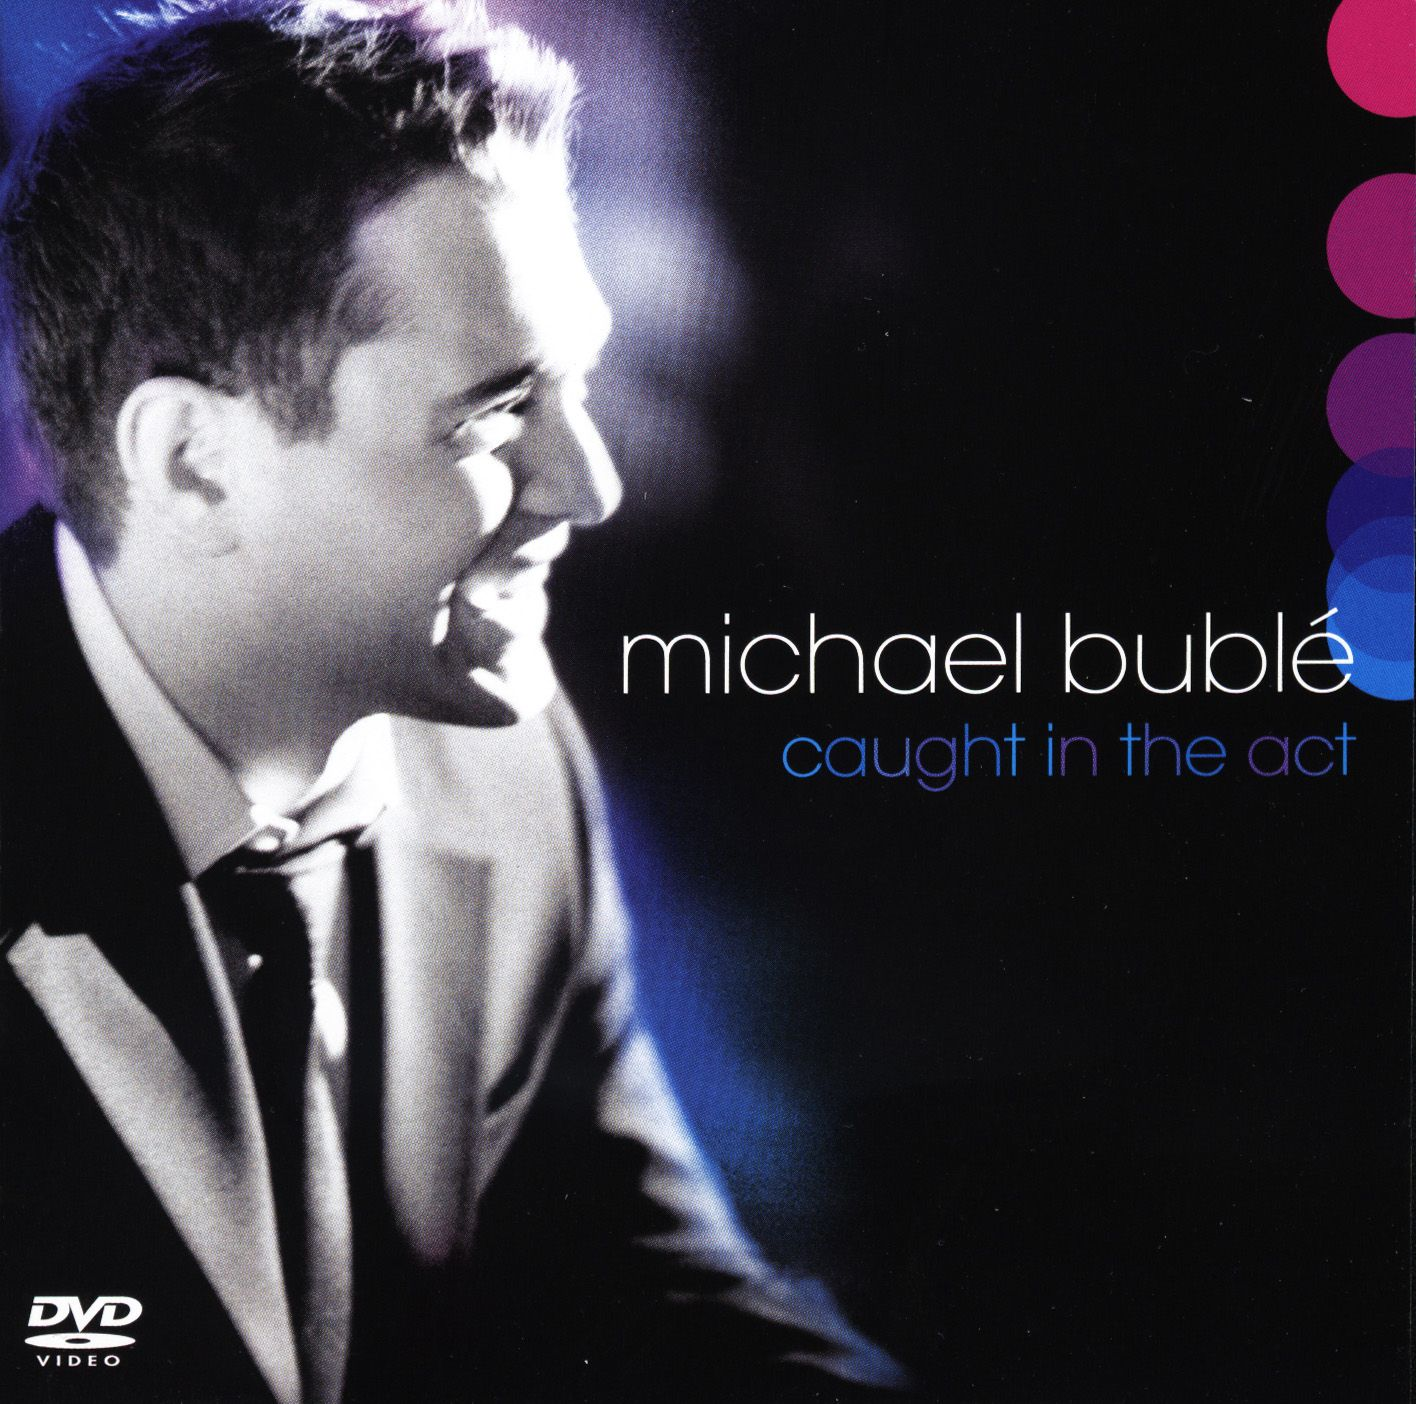 Michael Bublé - Caught In The Act album cover